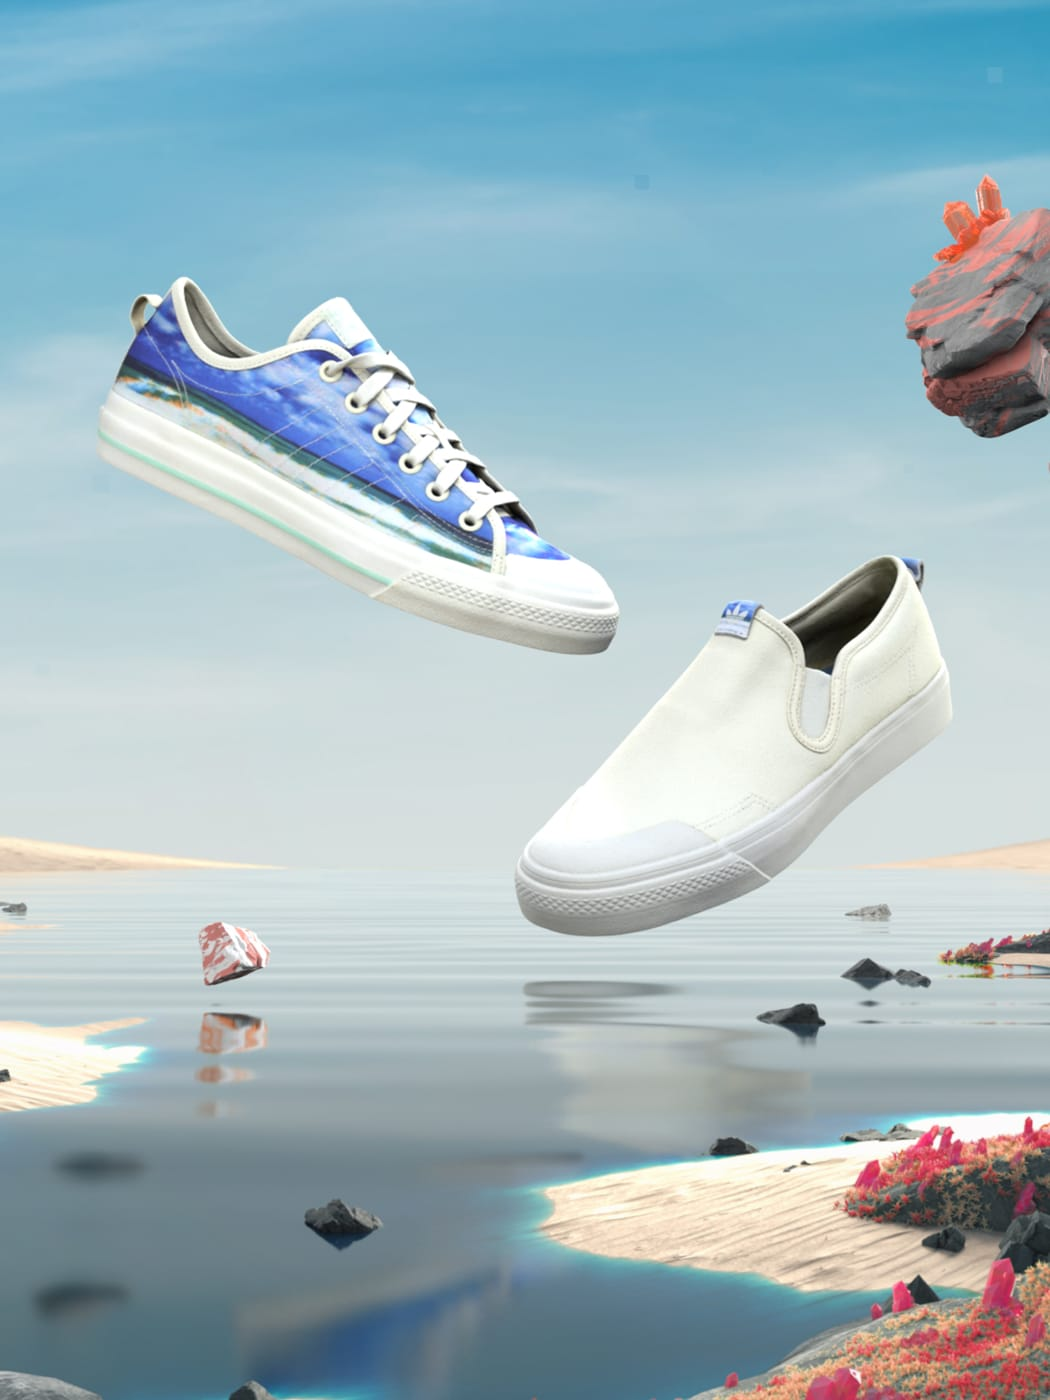 Image of four summer footwear styles in paradise.